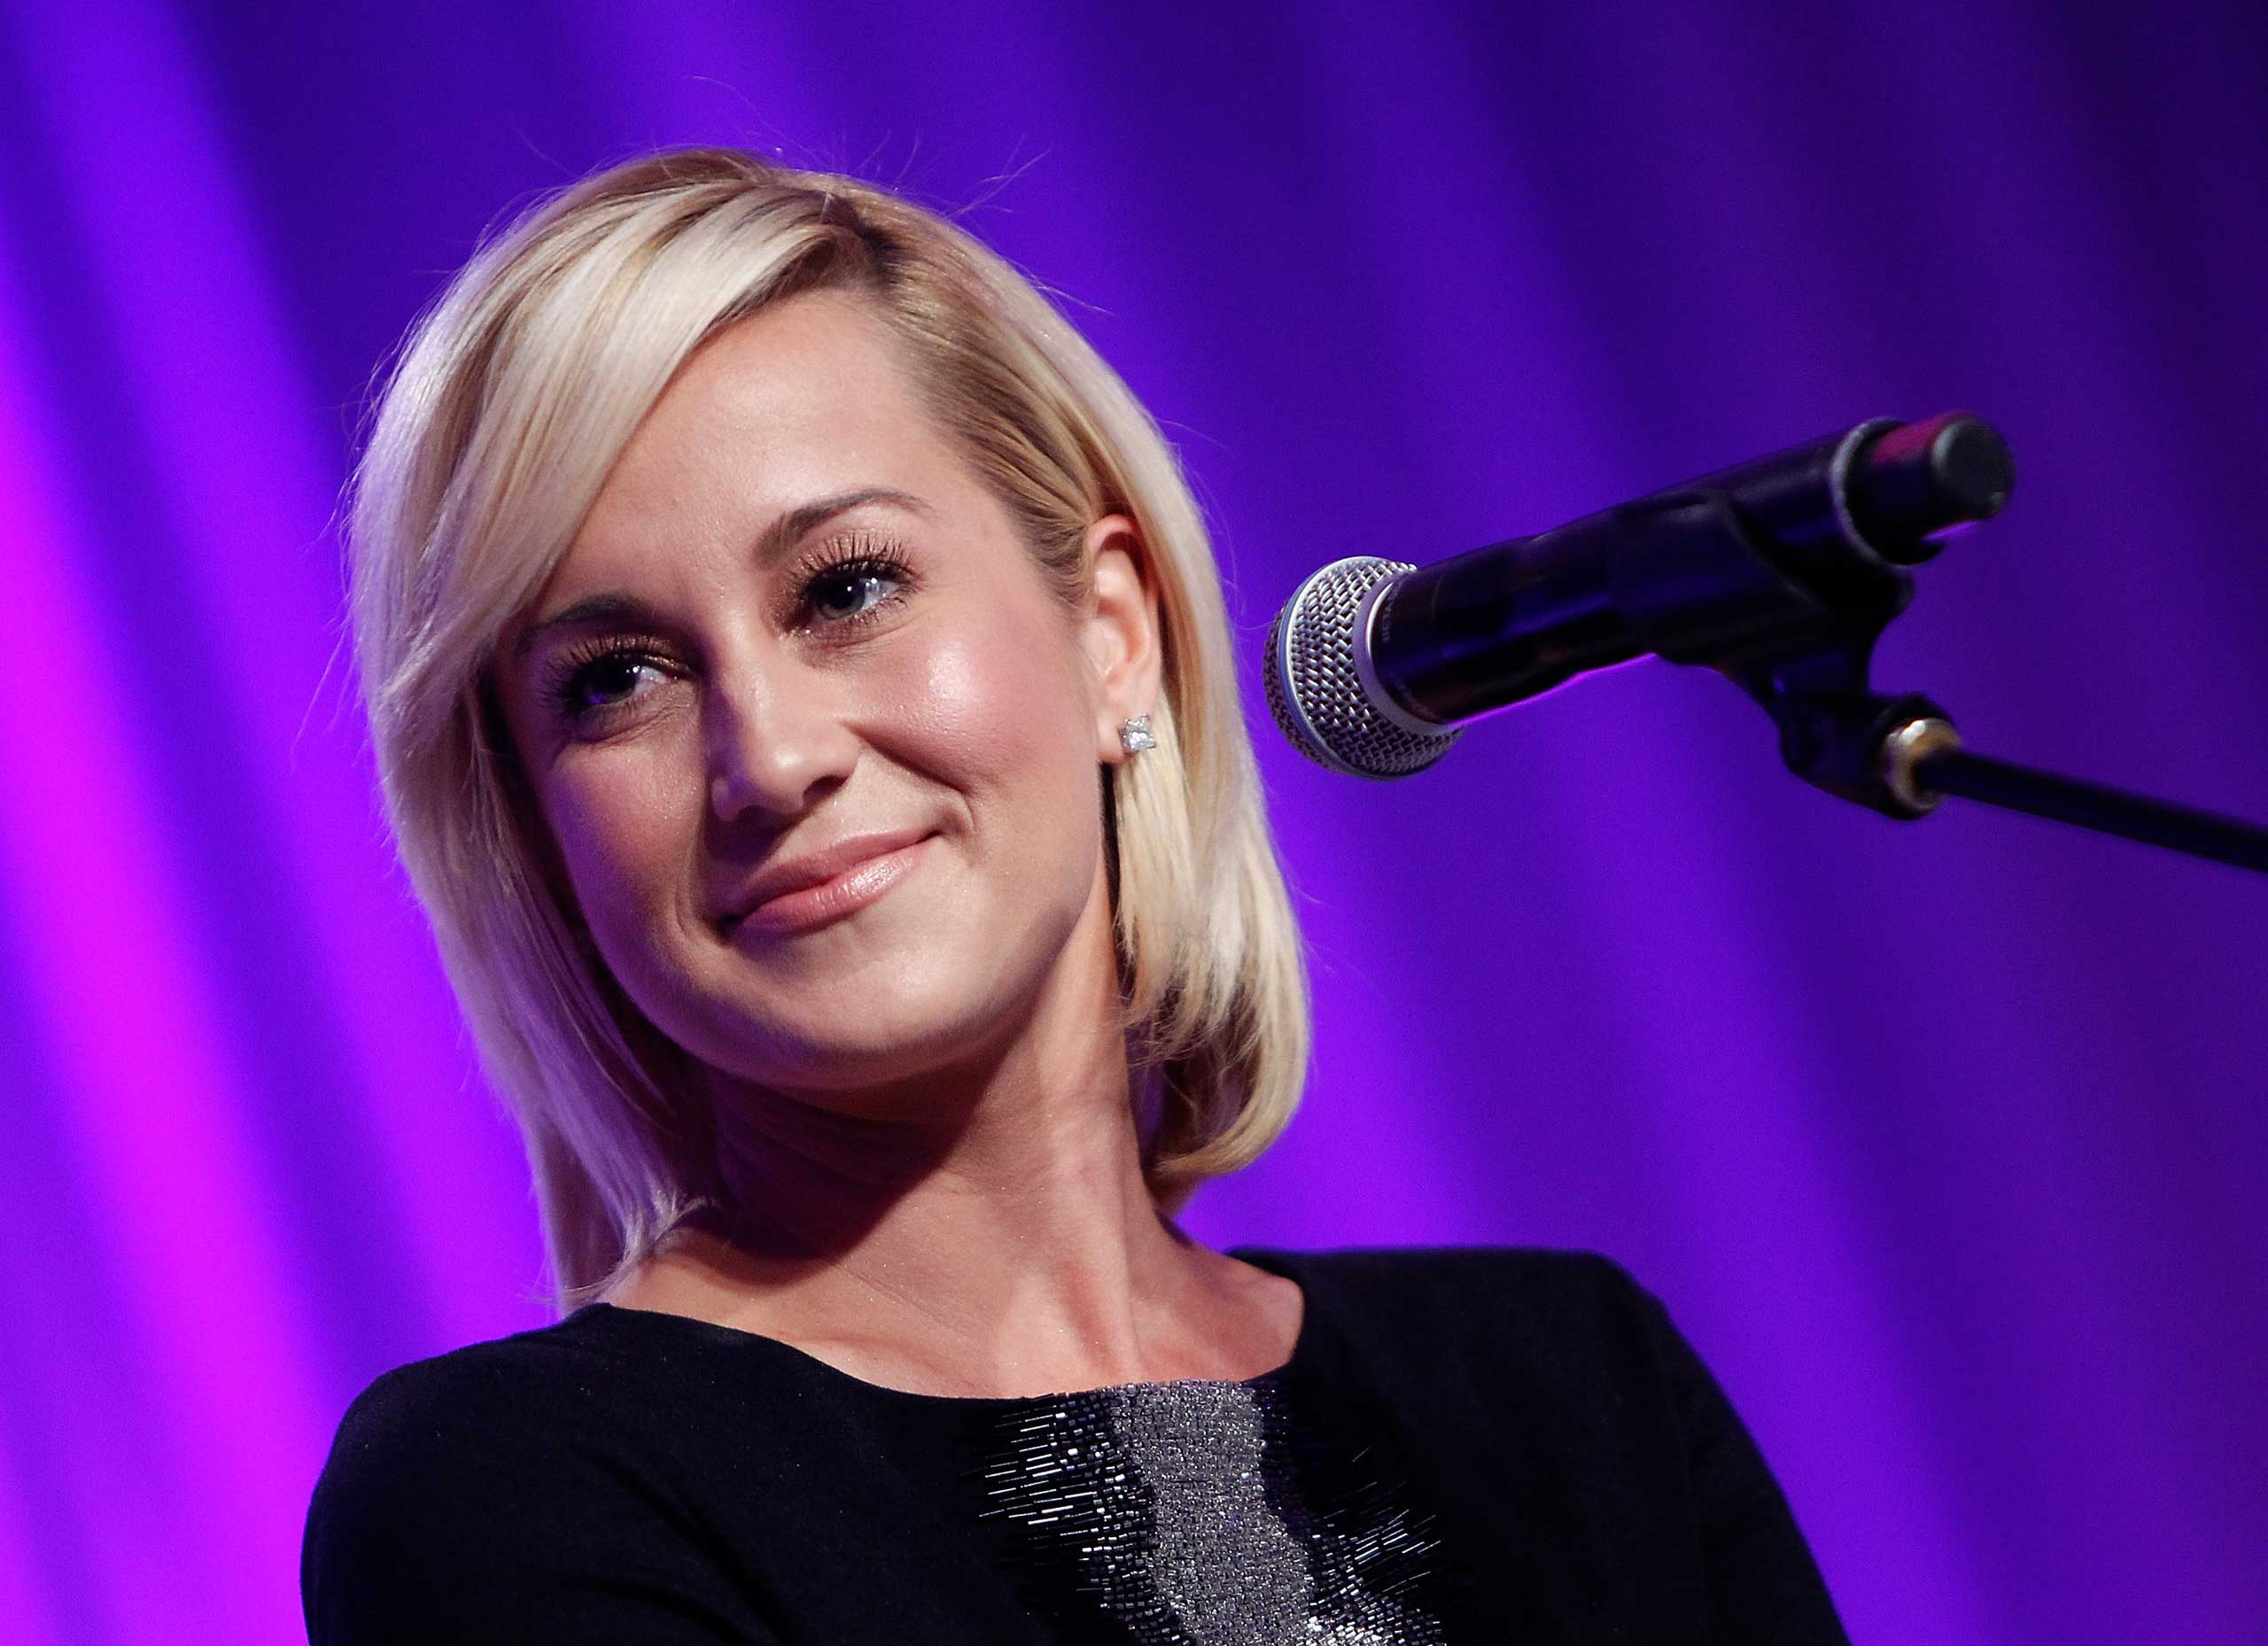 <b>Kellie Pickler</b>, who came in 6th on season 5, performs at 2014 USO Gala: Honoring Those Who Serve at the Washington Hilton in Washington on Oct. 17, 2014.